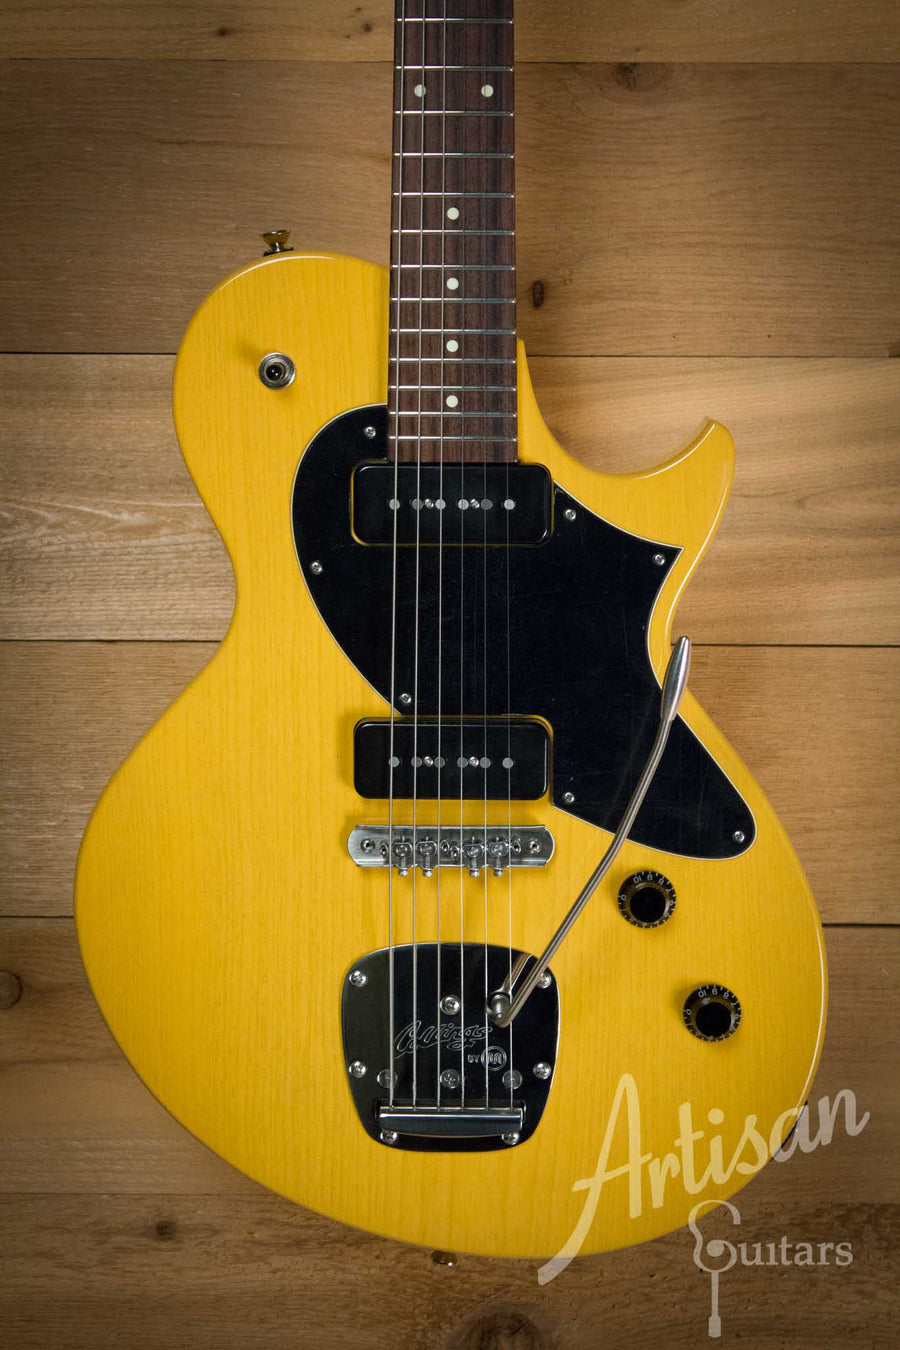 Collings 360 LT M Ash Guitar Butterscotch Blonde Finish with Mastery Bridge ID-10254 - Artisan Guitars